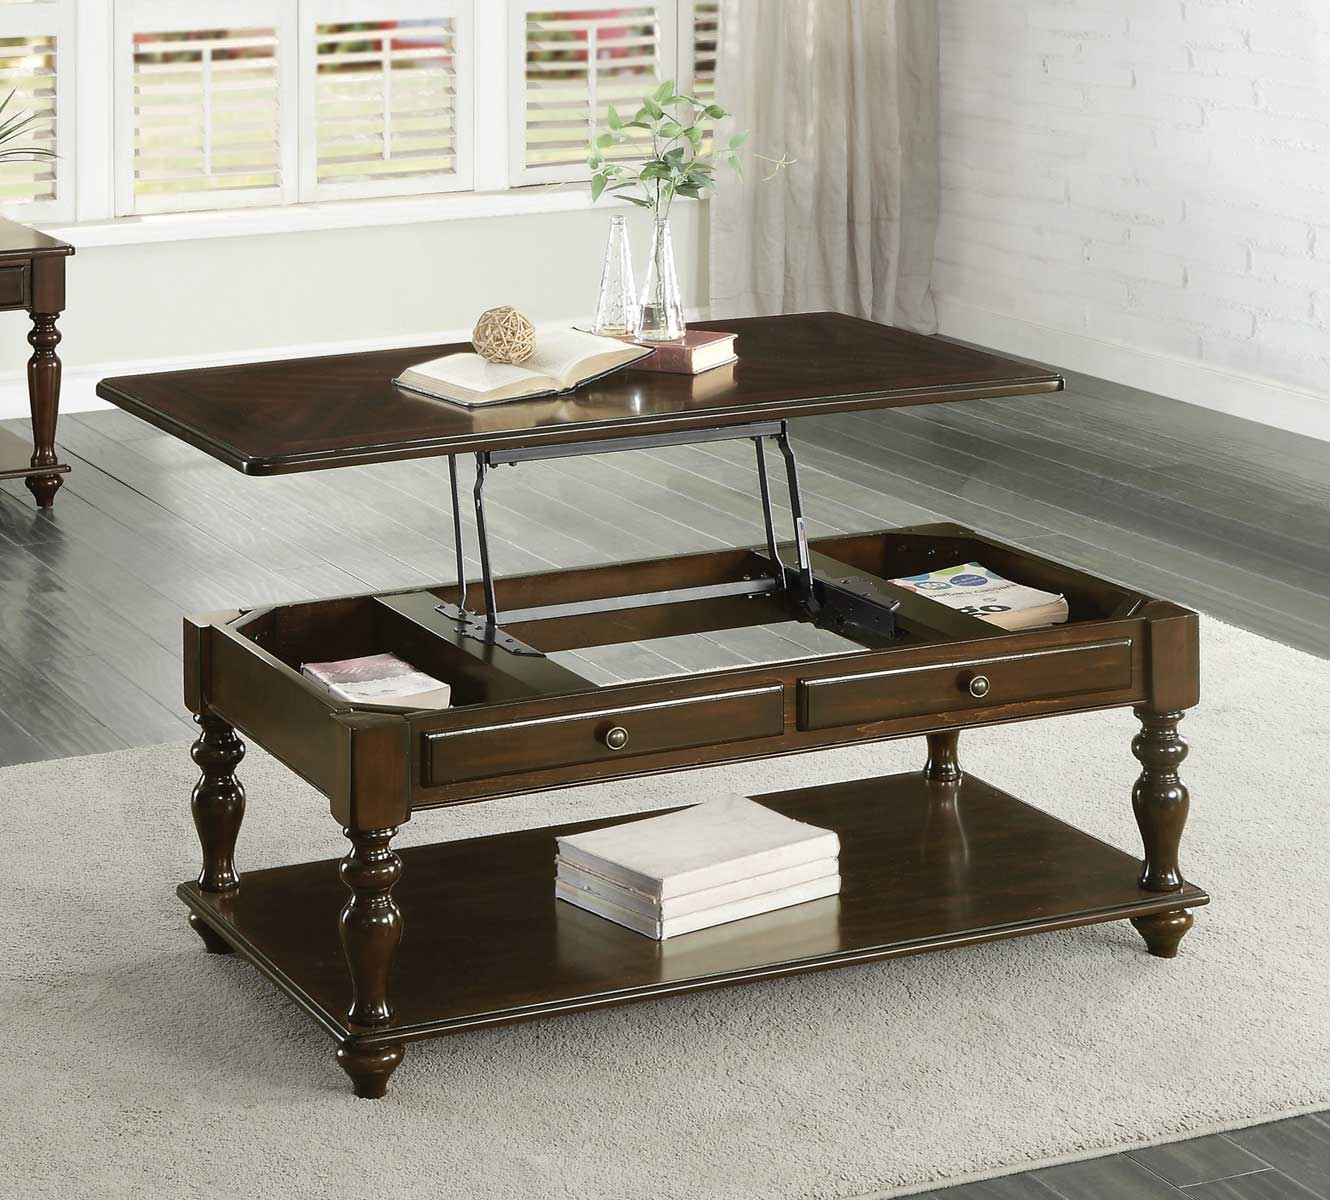 Homelegance Lovington Cocktail Table with Lift Top on Casters - Espresso